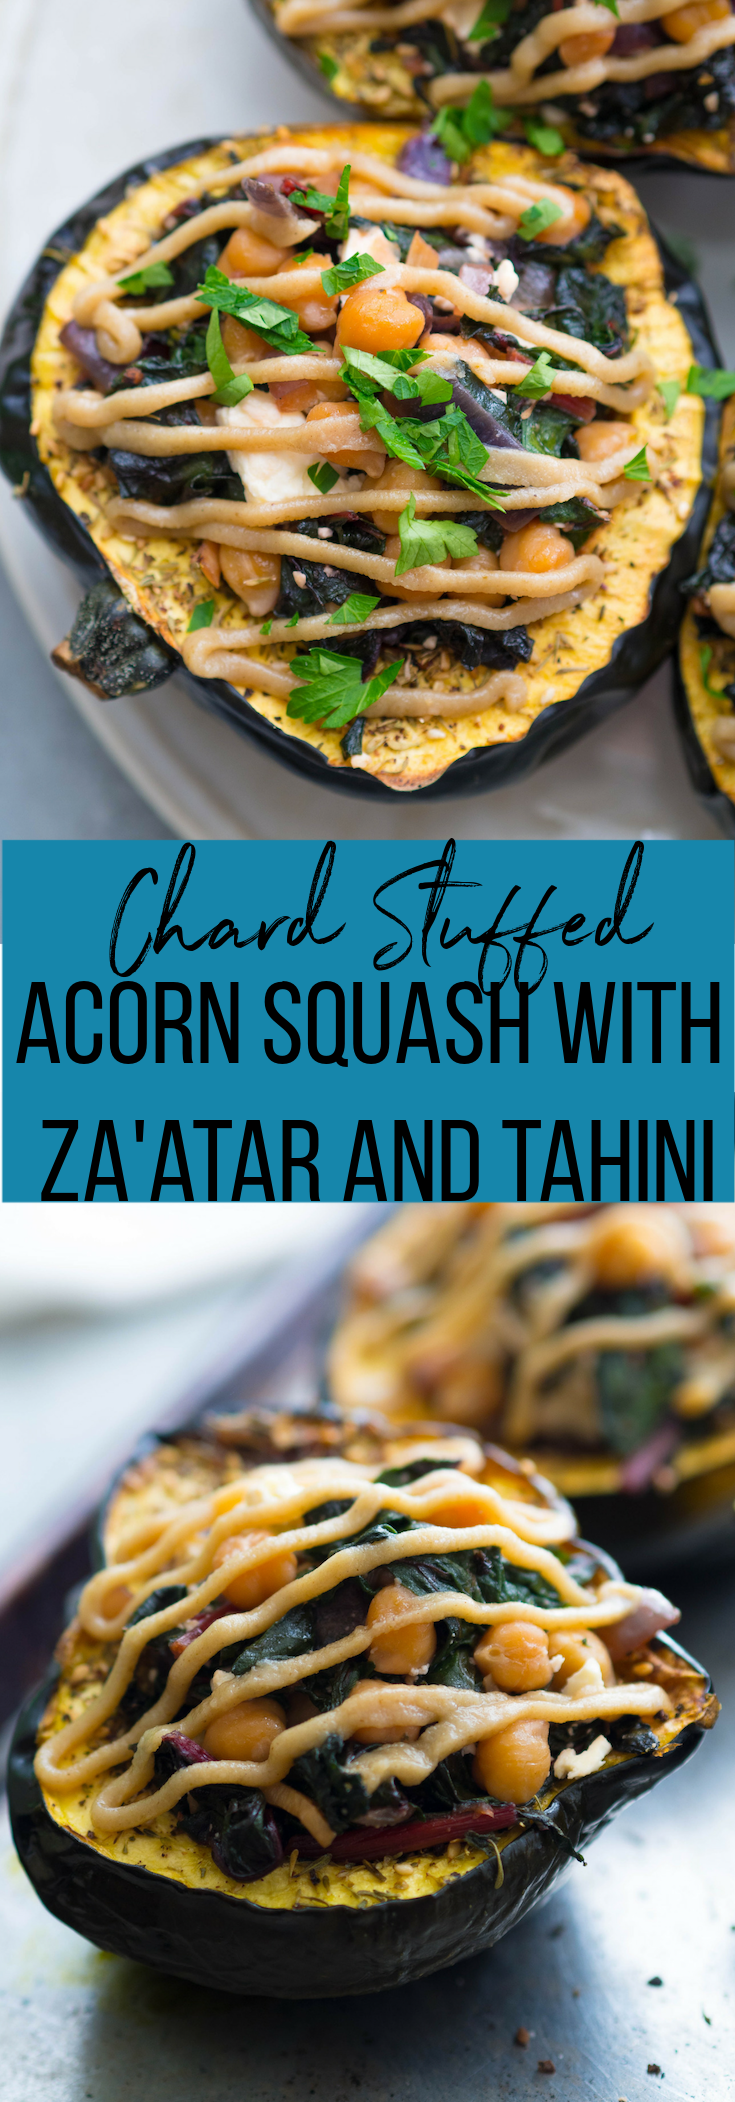 Chard stuffed acorn squash with za'atar and tahini drizzle is a show stopper, but is surprisingly weeknight friendly! You could serve this as a vegetarian main for holiday entertaining! #acornsquash #vegetarian #glutenfree #zaatar #holiday #christmas #feta #chickpea #healthyrecipe